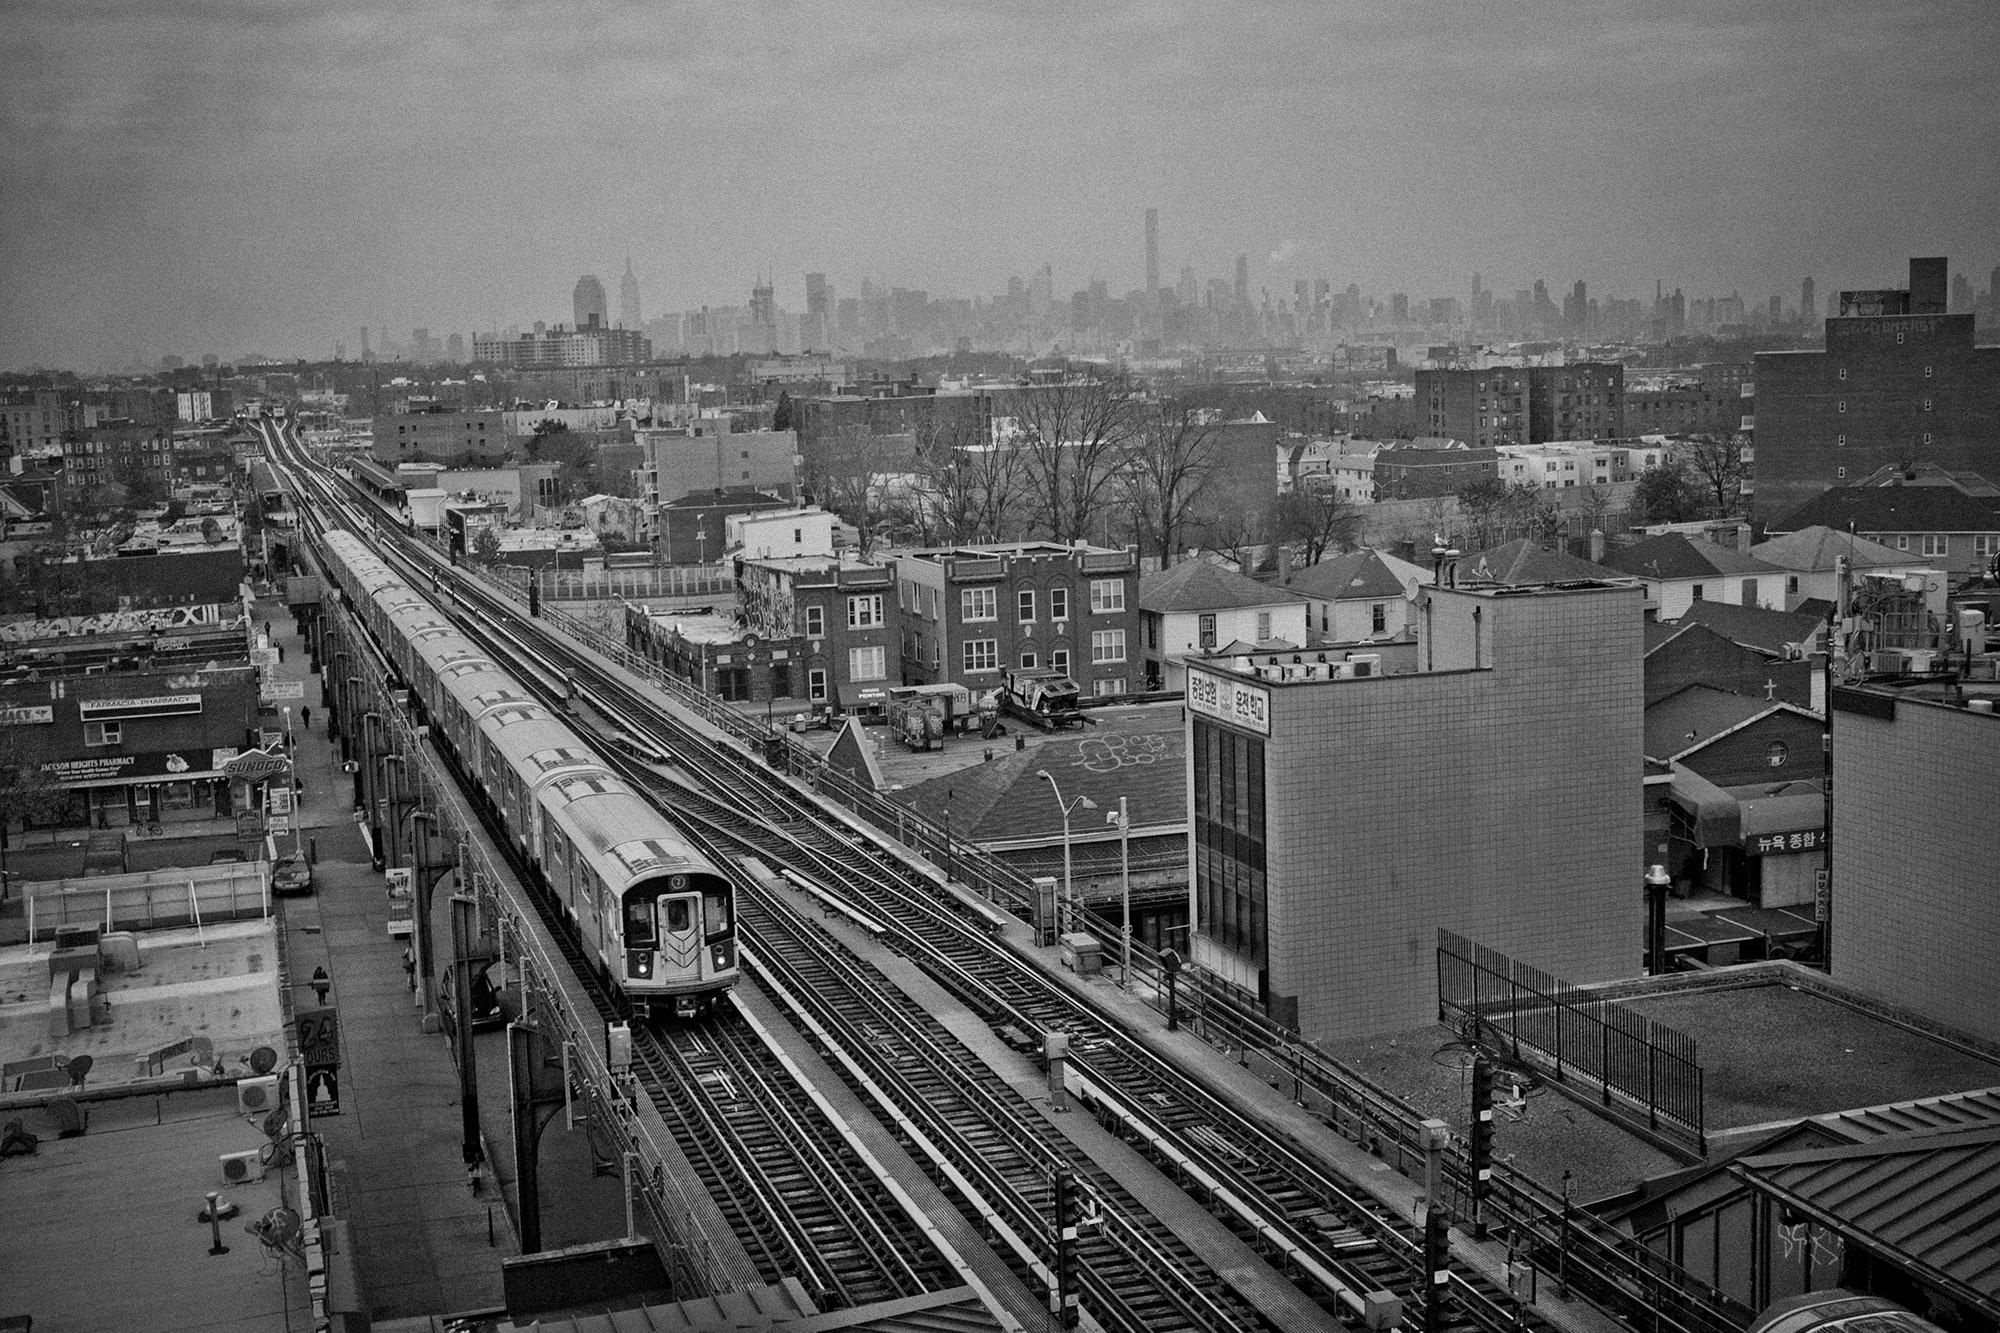 <p>The 74th Street 7 train stop in Jackson Heights, Queens, N.Y., with the Manhattan skyline in the distance in December 2015. (Photo: Yunghi Kim/Contact Press Images) </p>